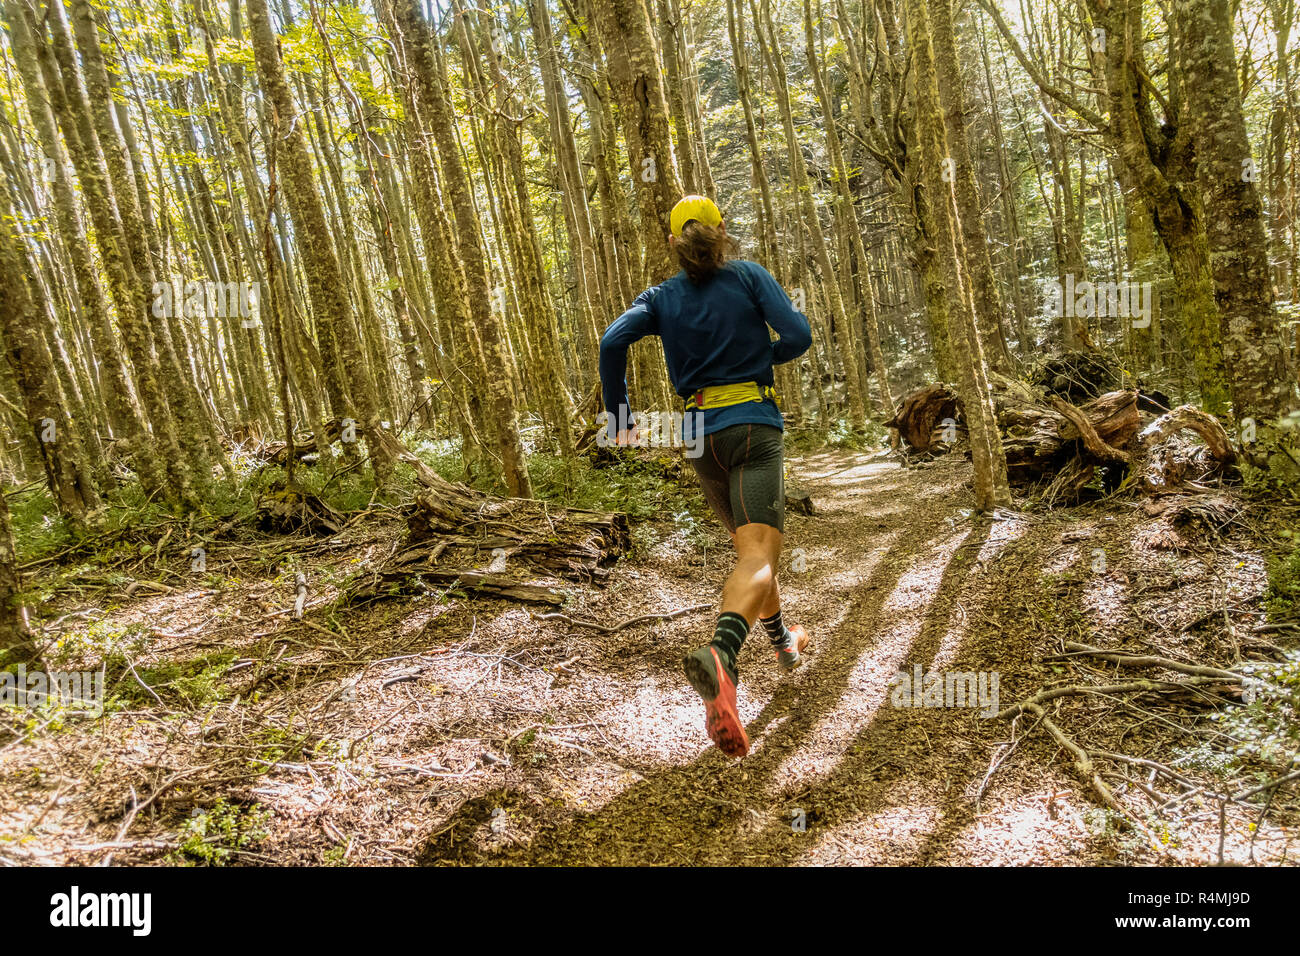 Athlete running on a trail through Coyhaique National Reserve in Aysen Patagonia, Chile. - Stock Image